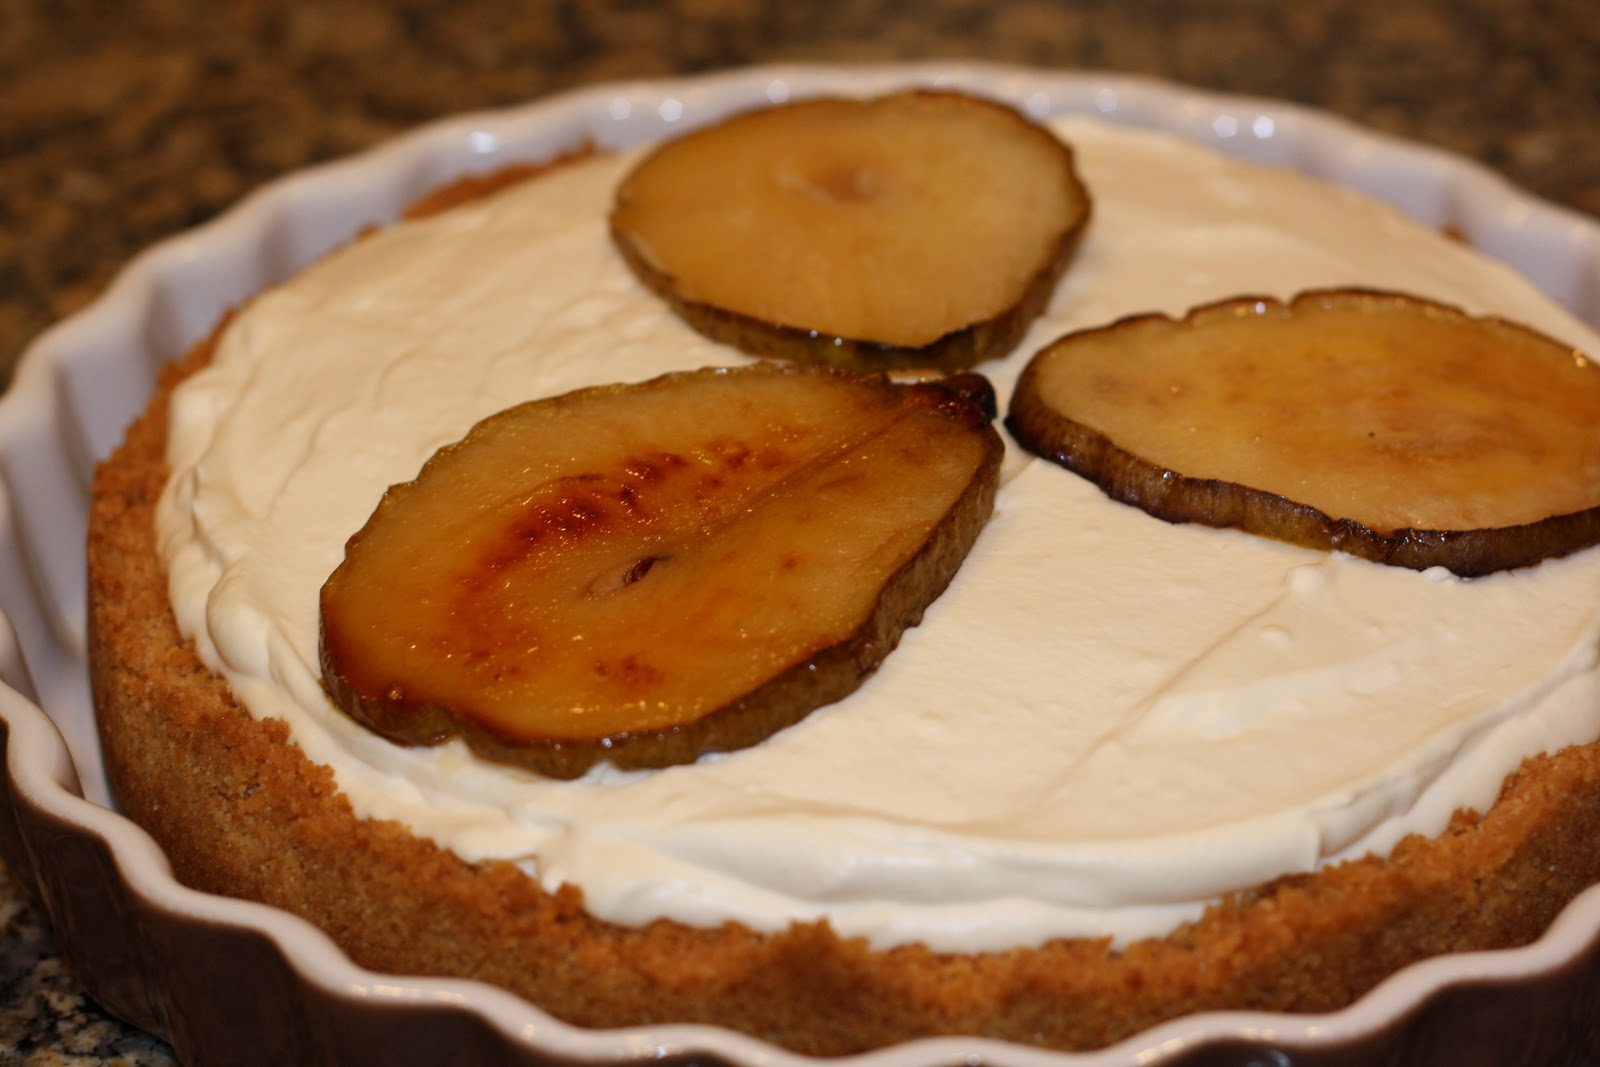 sunday sweets: maple cheesecake with roasted pears